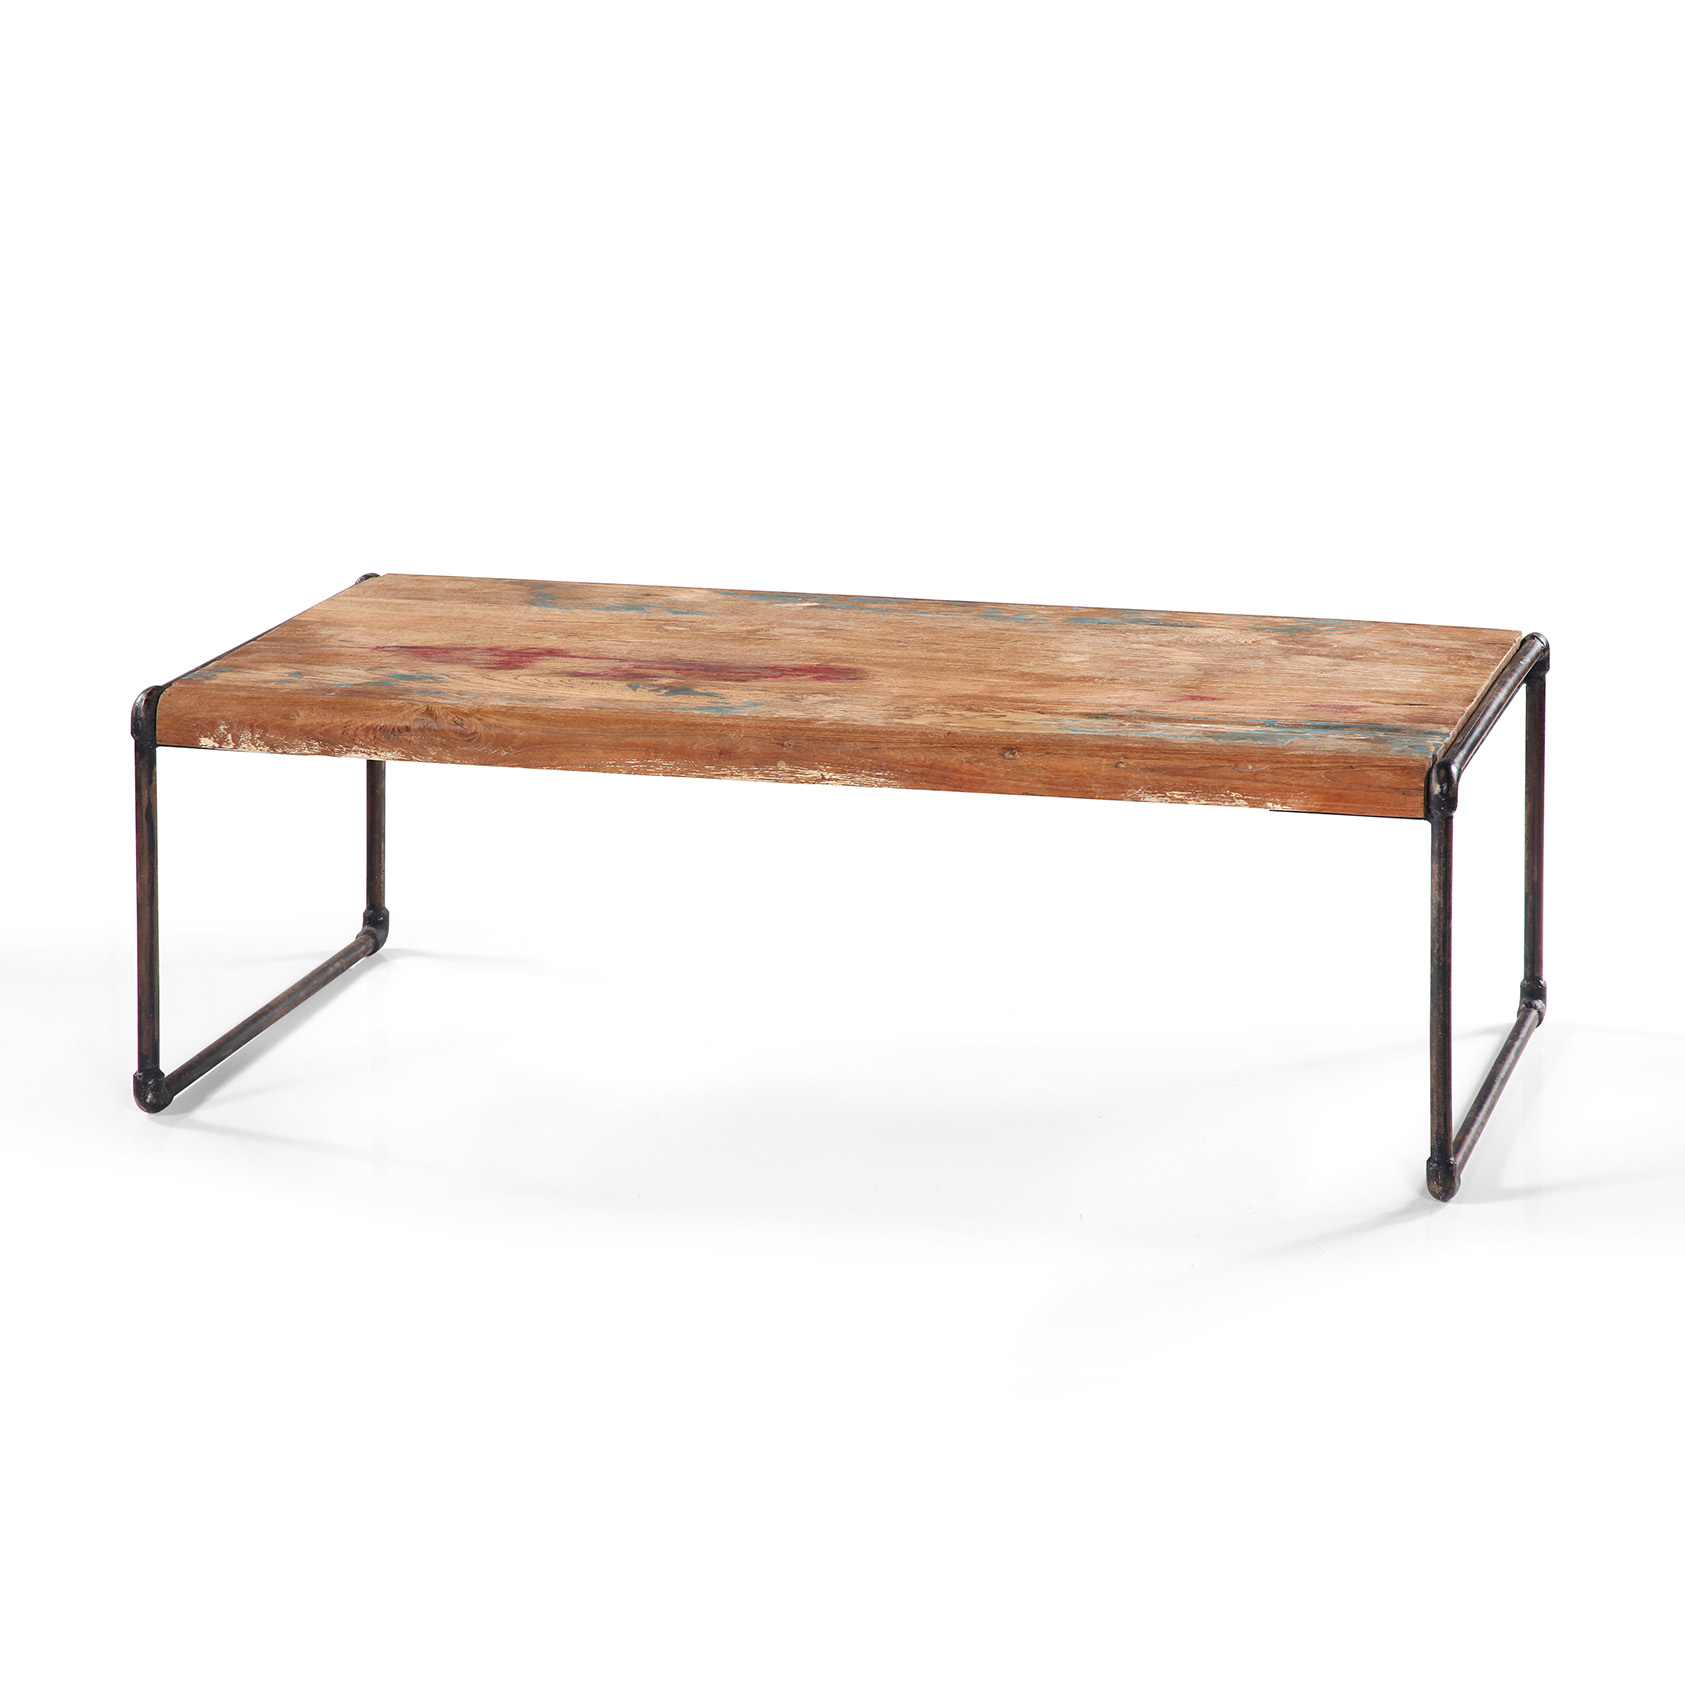 Table basse rectangulaire en teck massif recycl lombock - Table en teck recycle ...